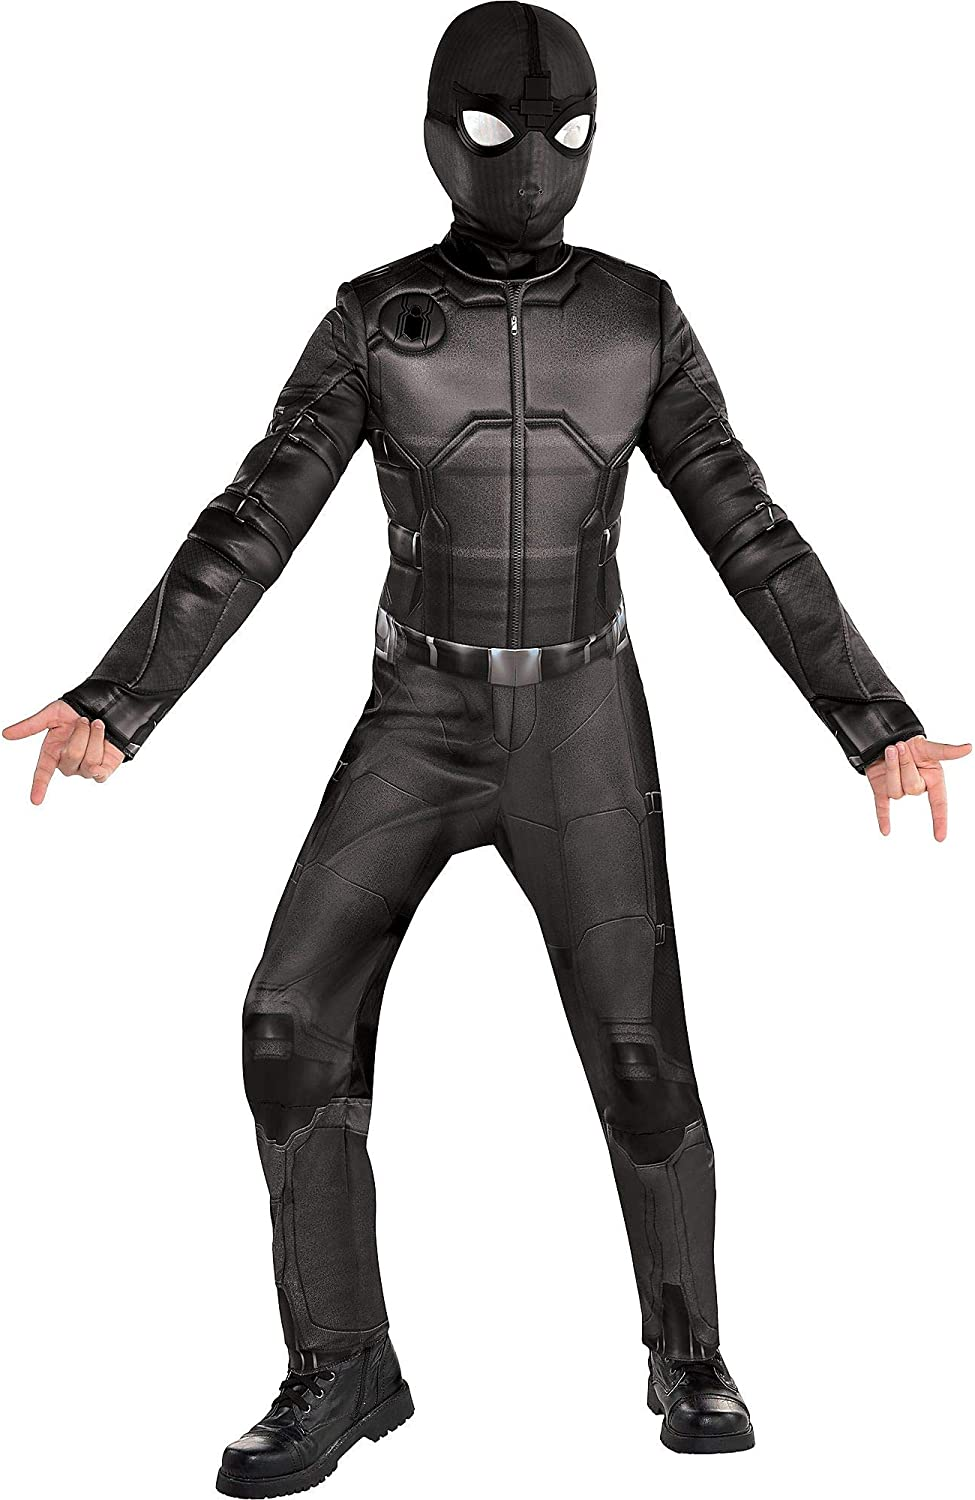 Party City Spider-Man: Far From Home Spider-Man Stealth Suit Costume for Children, Includes Mask and Goggles